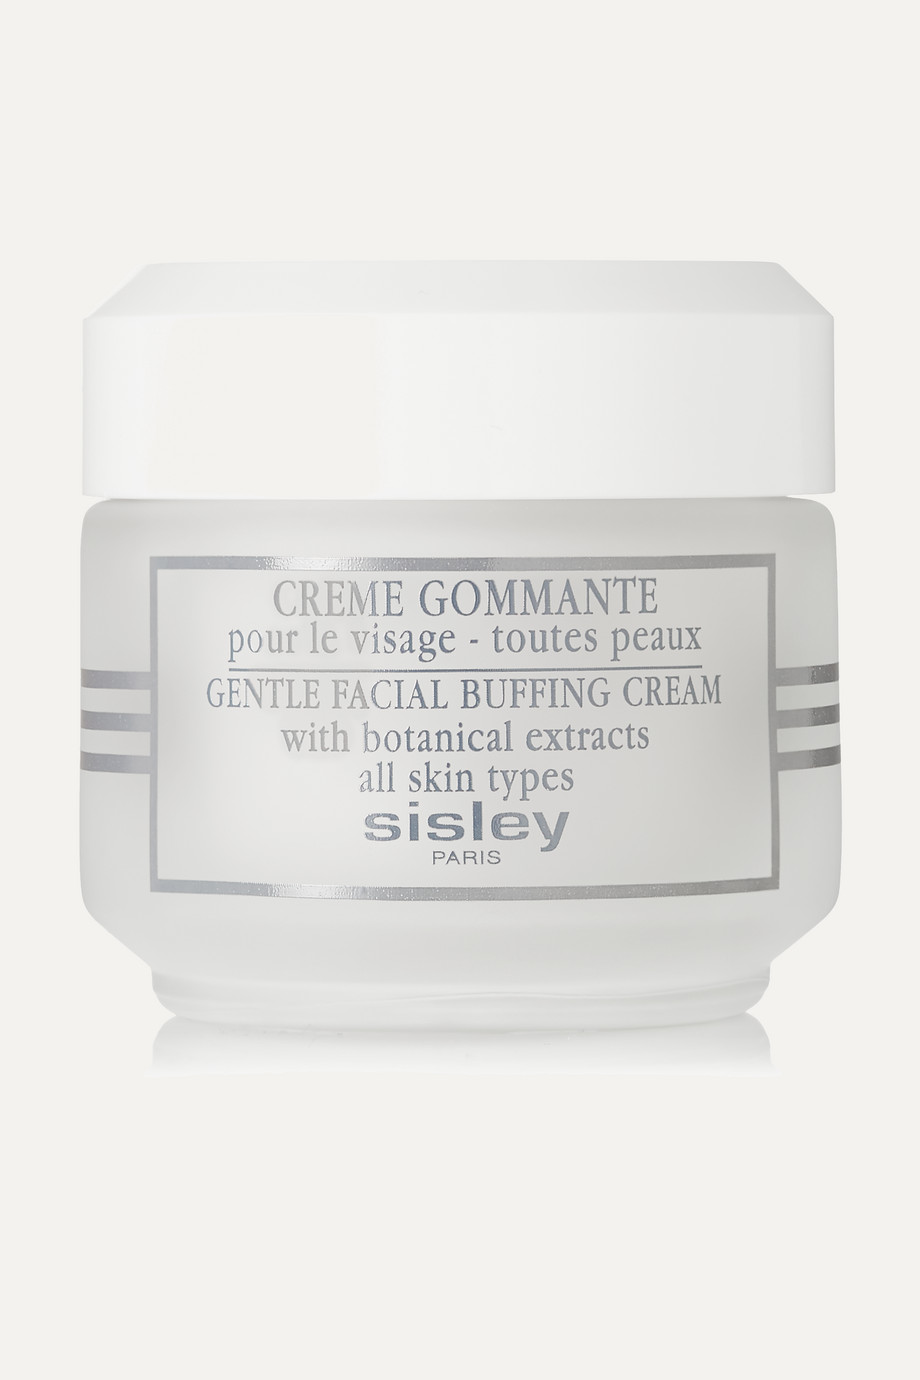 Sisley Gentle Facial Buffing Cream, 50ml